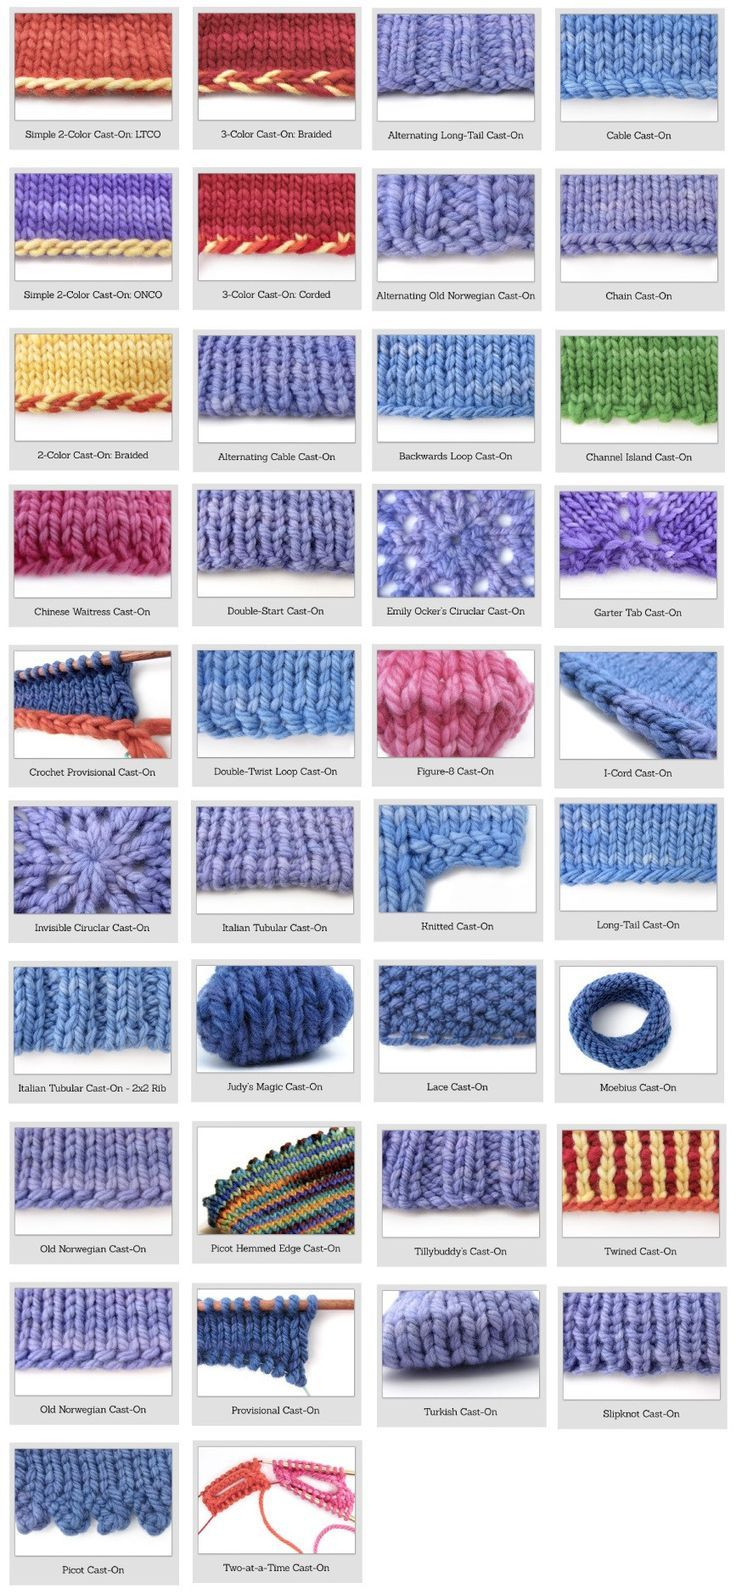 30 Days To Better Knitting, Day 2: Which knitting cast on methods do exist and how are they done? Learn how in the 30 Days to Better Knitting challenge.